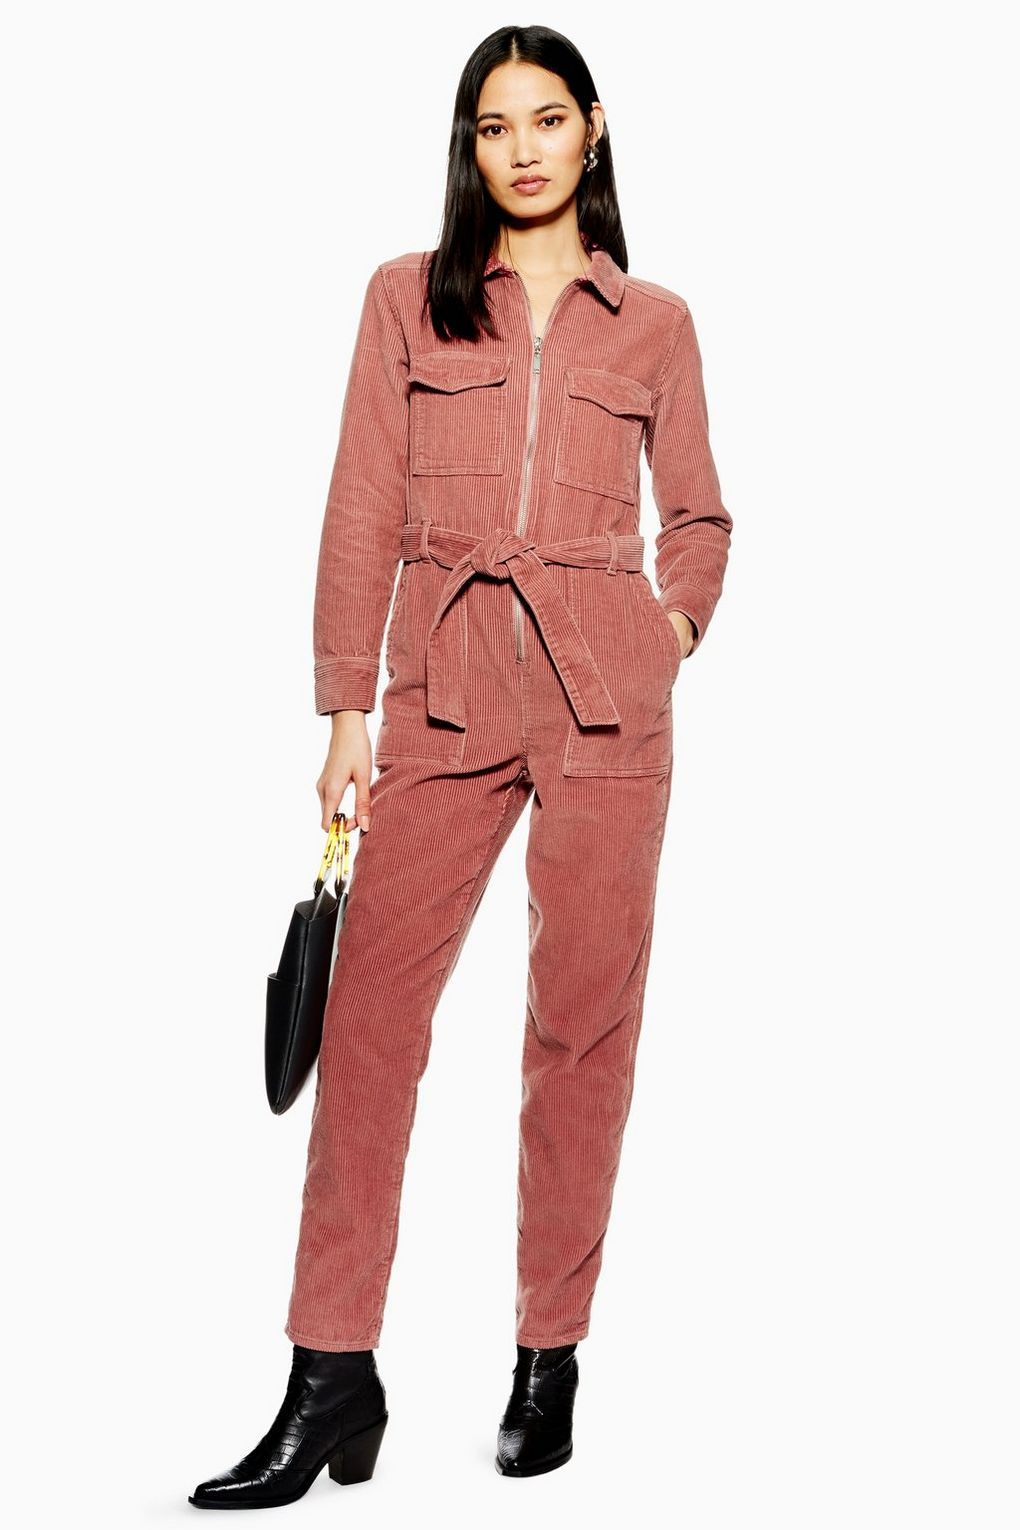 Pink Corduroy Boiler Suit - Rompers & Jumpsuits - Clothing